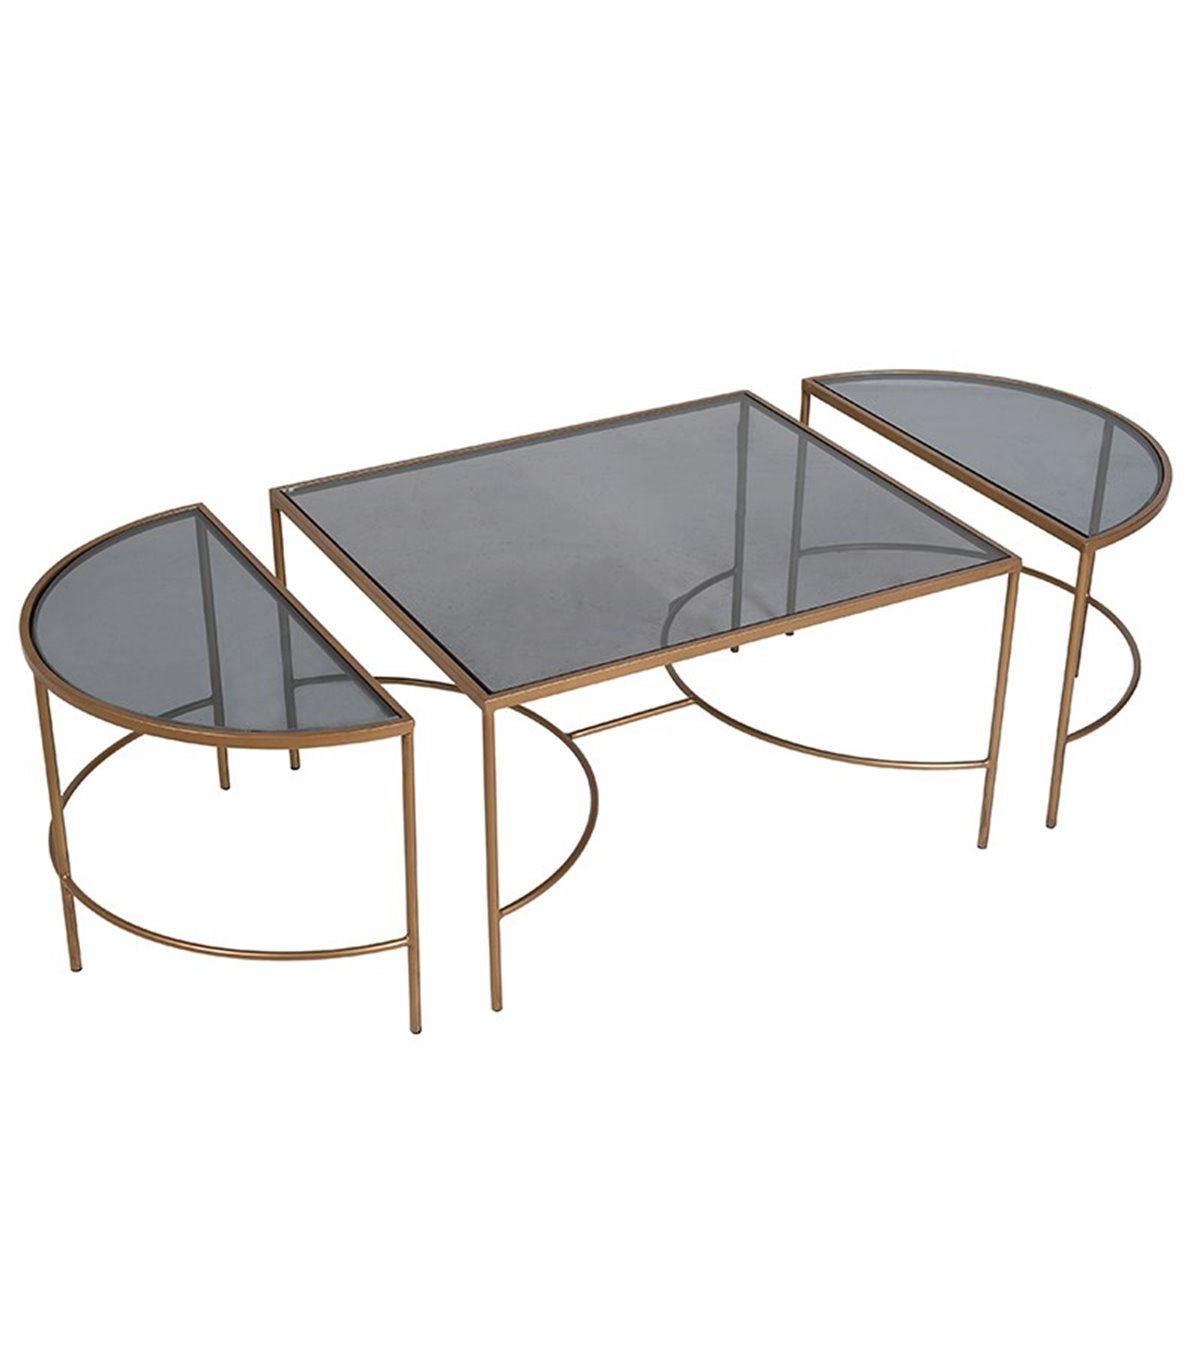 Modular Coffee Tables Intended For Most Recent Modular Glass Top Oblong Coffee Table (Gallery 20 of 20)